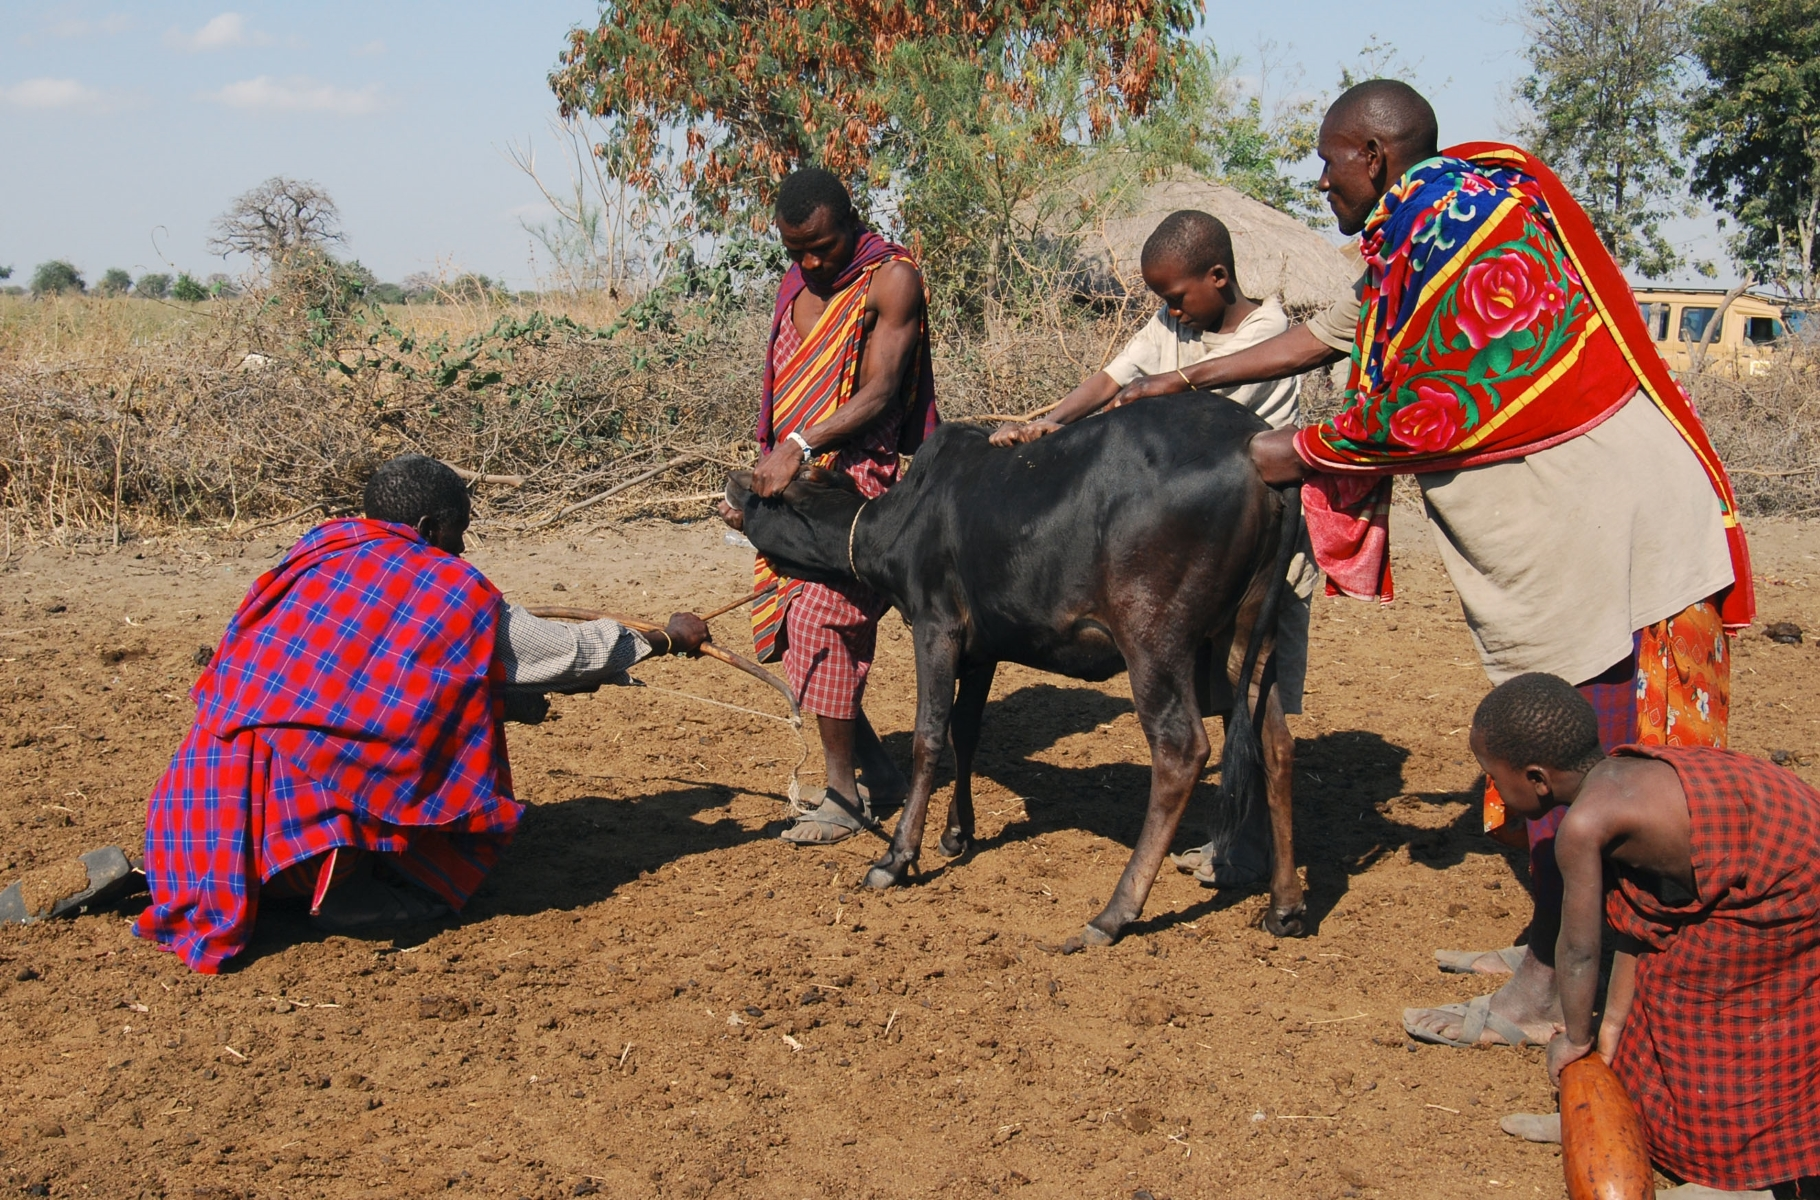 Cow-blood-is-considered-a-healing-medicine-for-the-Maasaiit-JA-1-Place-by-Bill-Sumits-MR